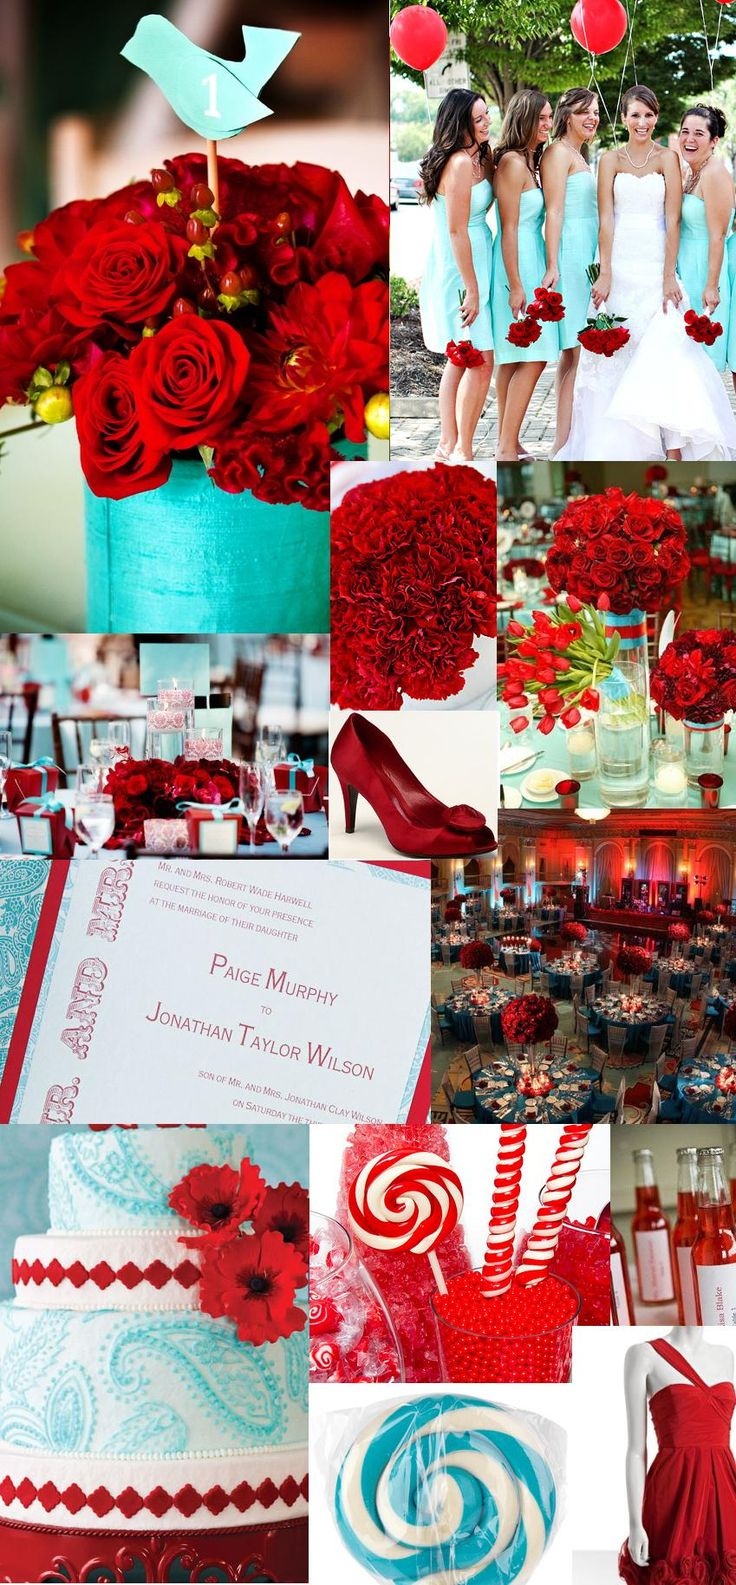 tiffany blue and poppy red! (or pool and persimmon according to Davids bridal) I LOVE this color scheme. don't know that i would actually use it, but it's very bright, happy, and vintage looking.